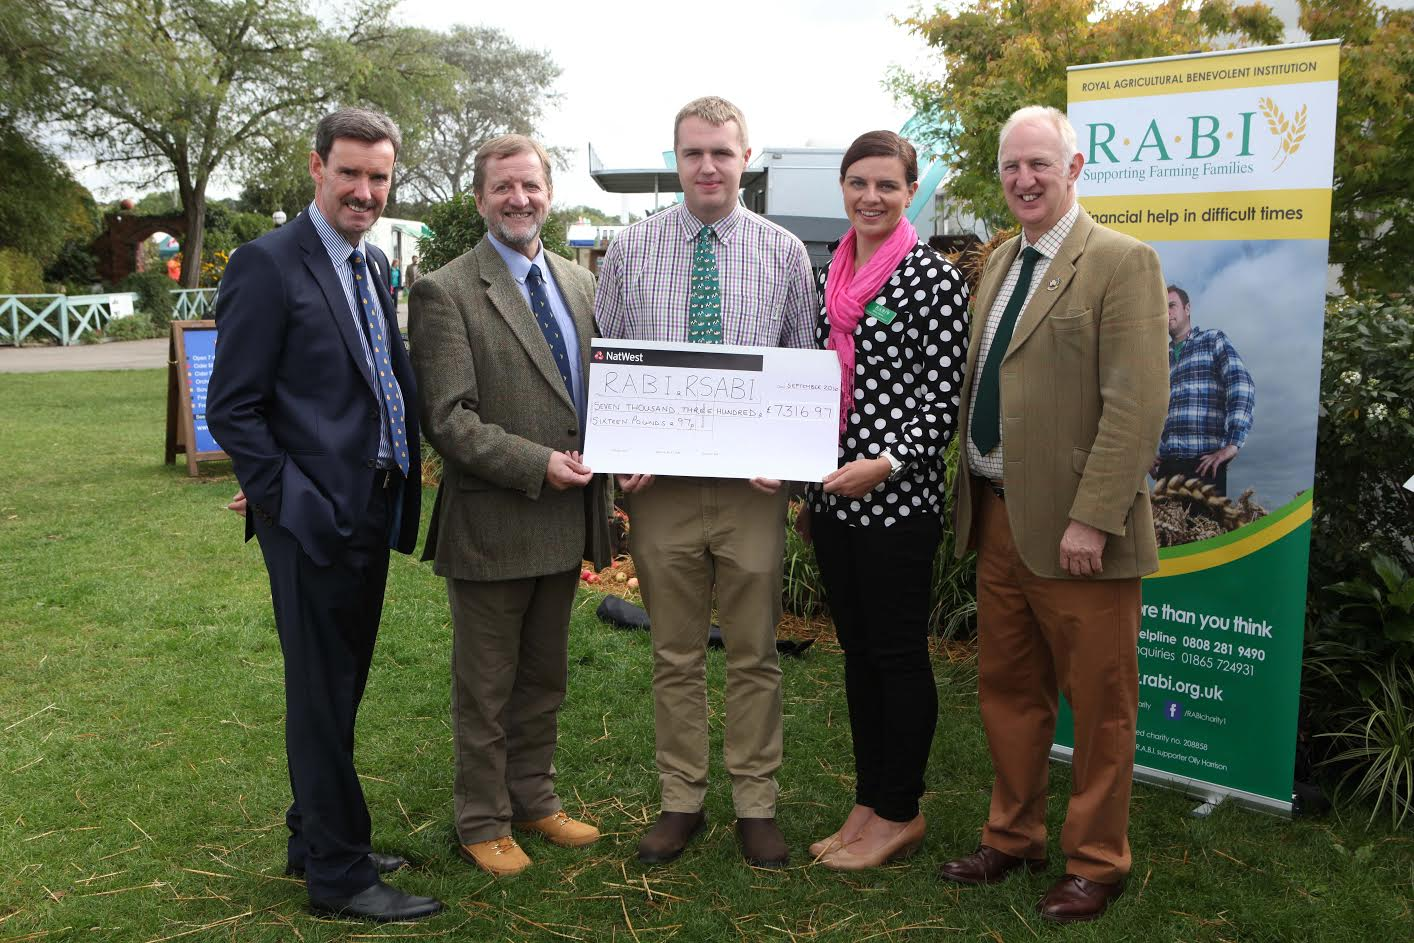 18 year old Jack travels over 1000 miles and raises £7316 for rural charities